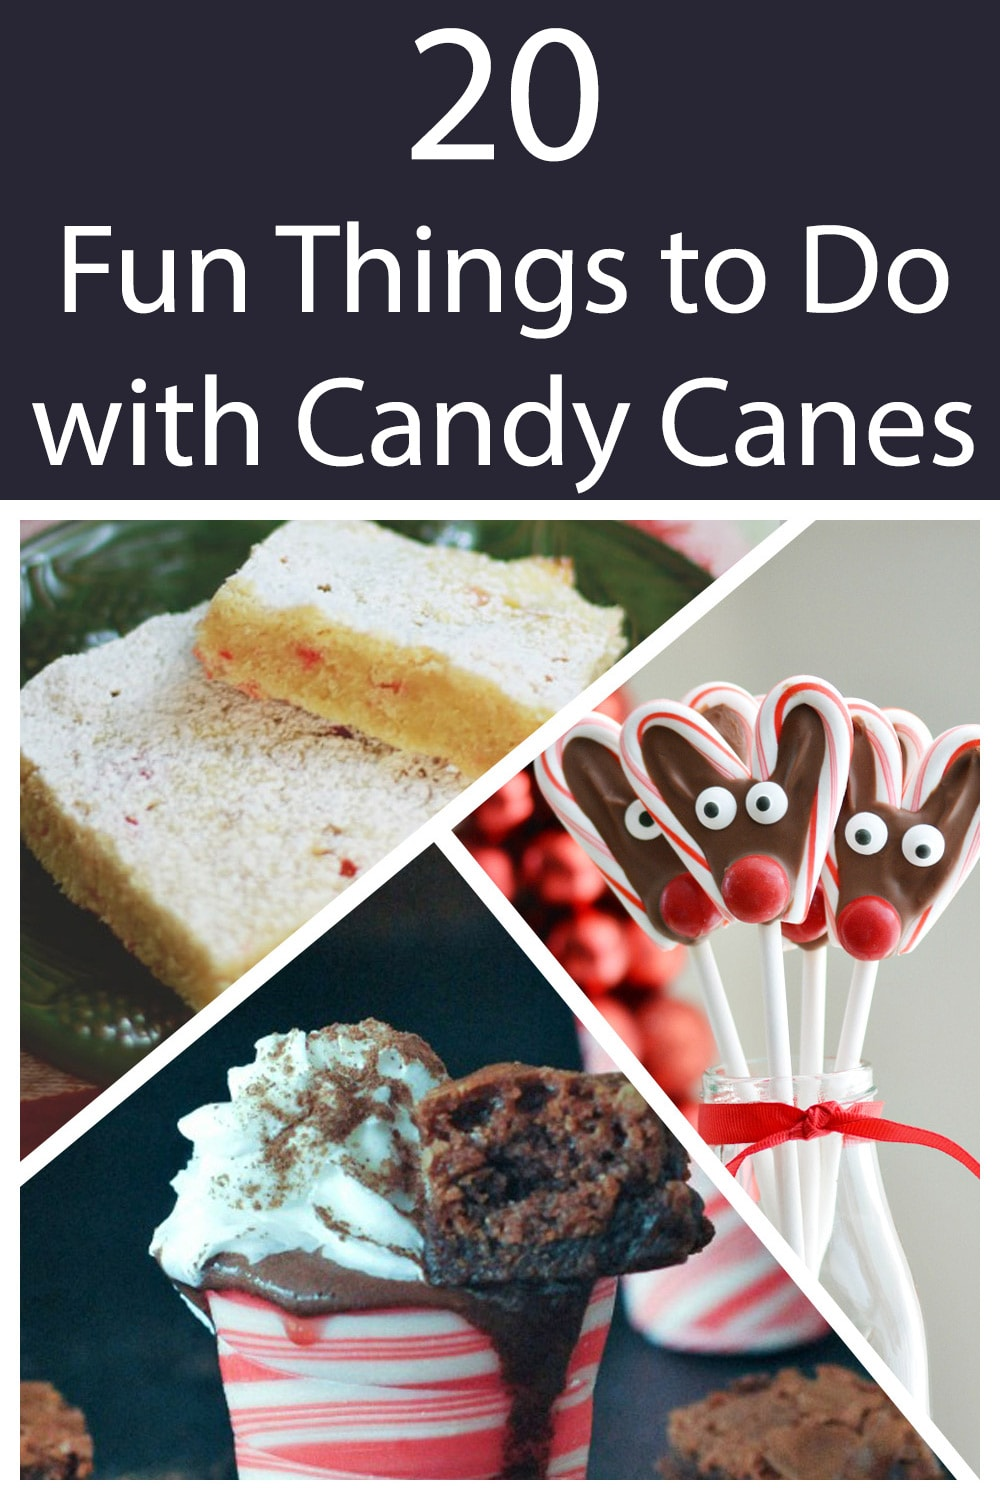 20 Fun Things to do with Candy Canes #christmascrafts #christmas #candycane #peppermint